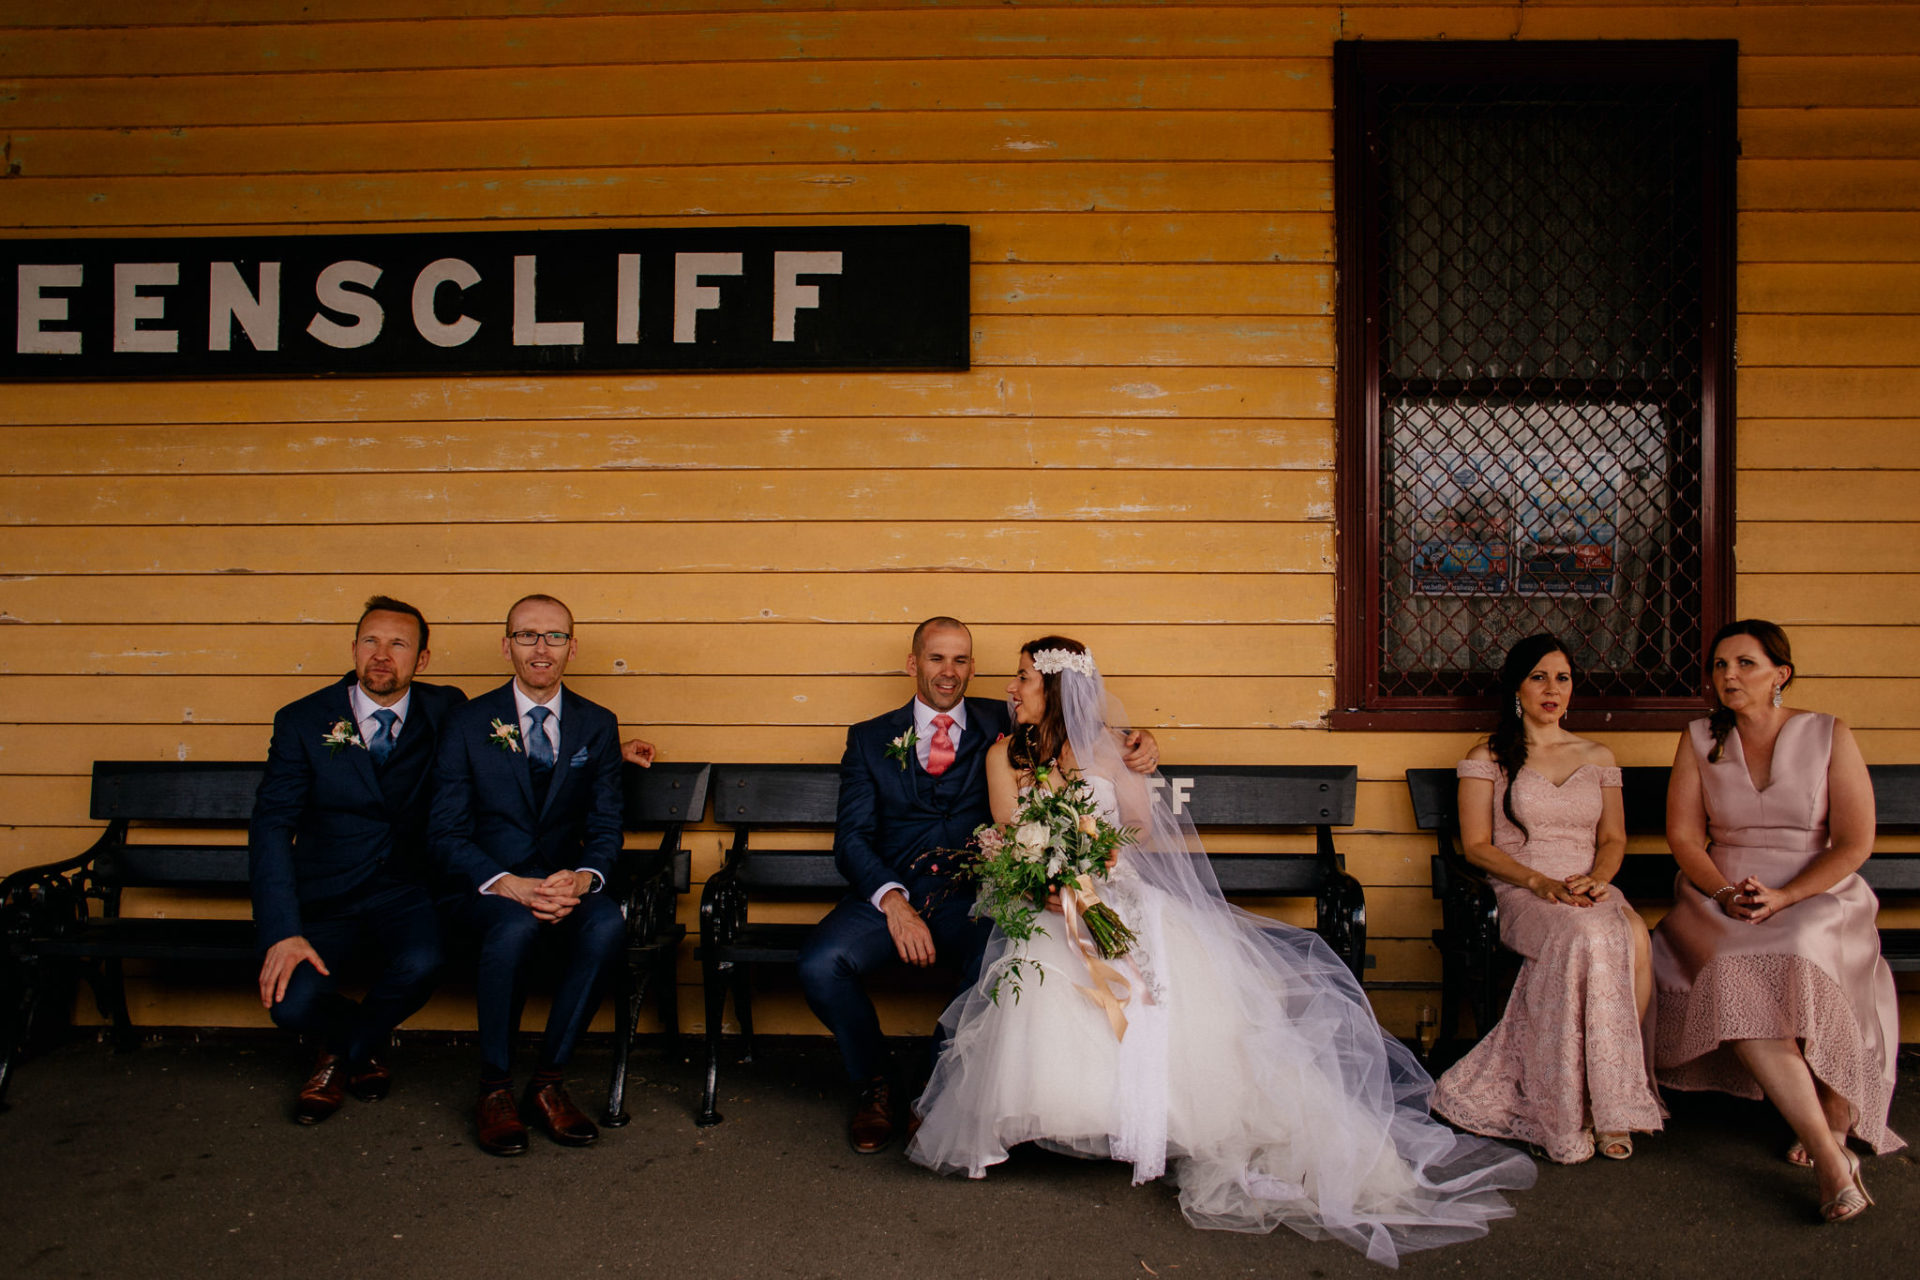 Melbourne Wedding Photographer-Queenscliff DIY garden wedding-bridal portraits queens cliff old train station